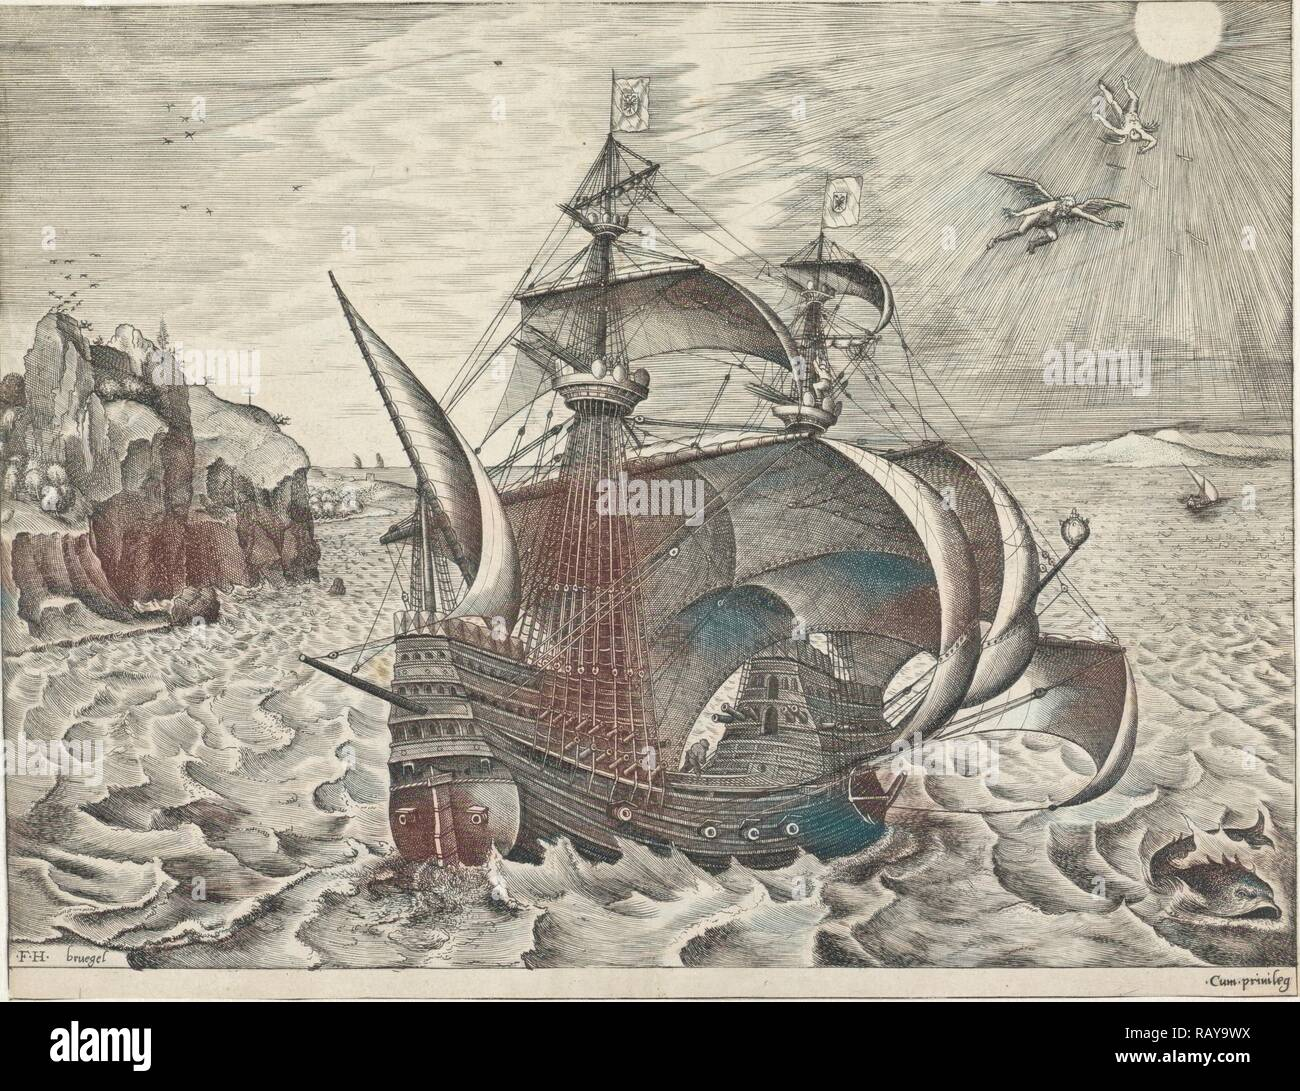 Sailing ship with the Fall of Icarus, Frans Huys, unknown, 1561-1565. Reimagined by Gibon. Classic art with a modern reimagined - Stock Image